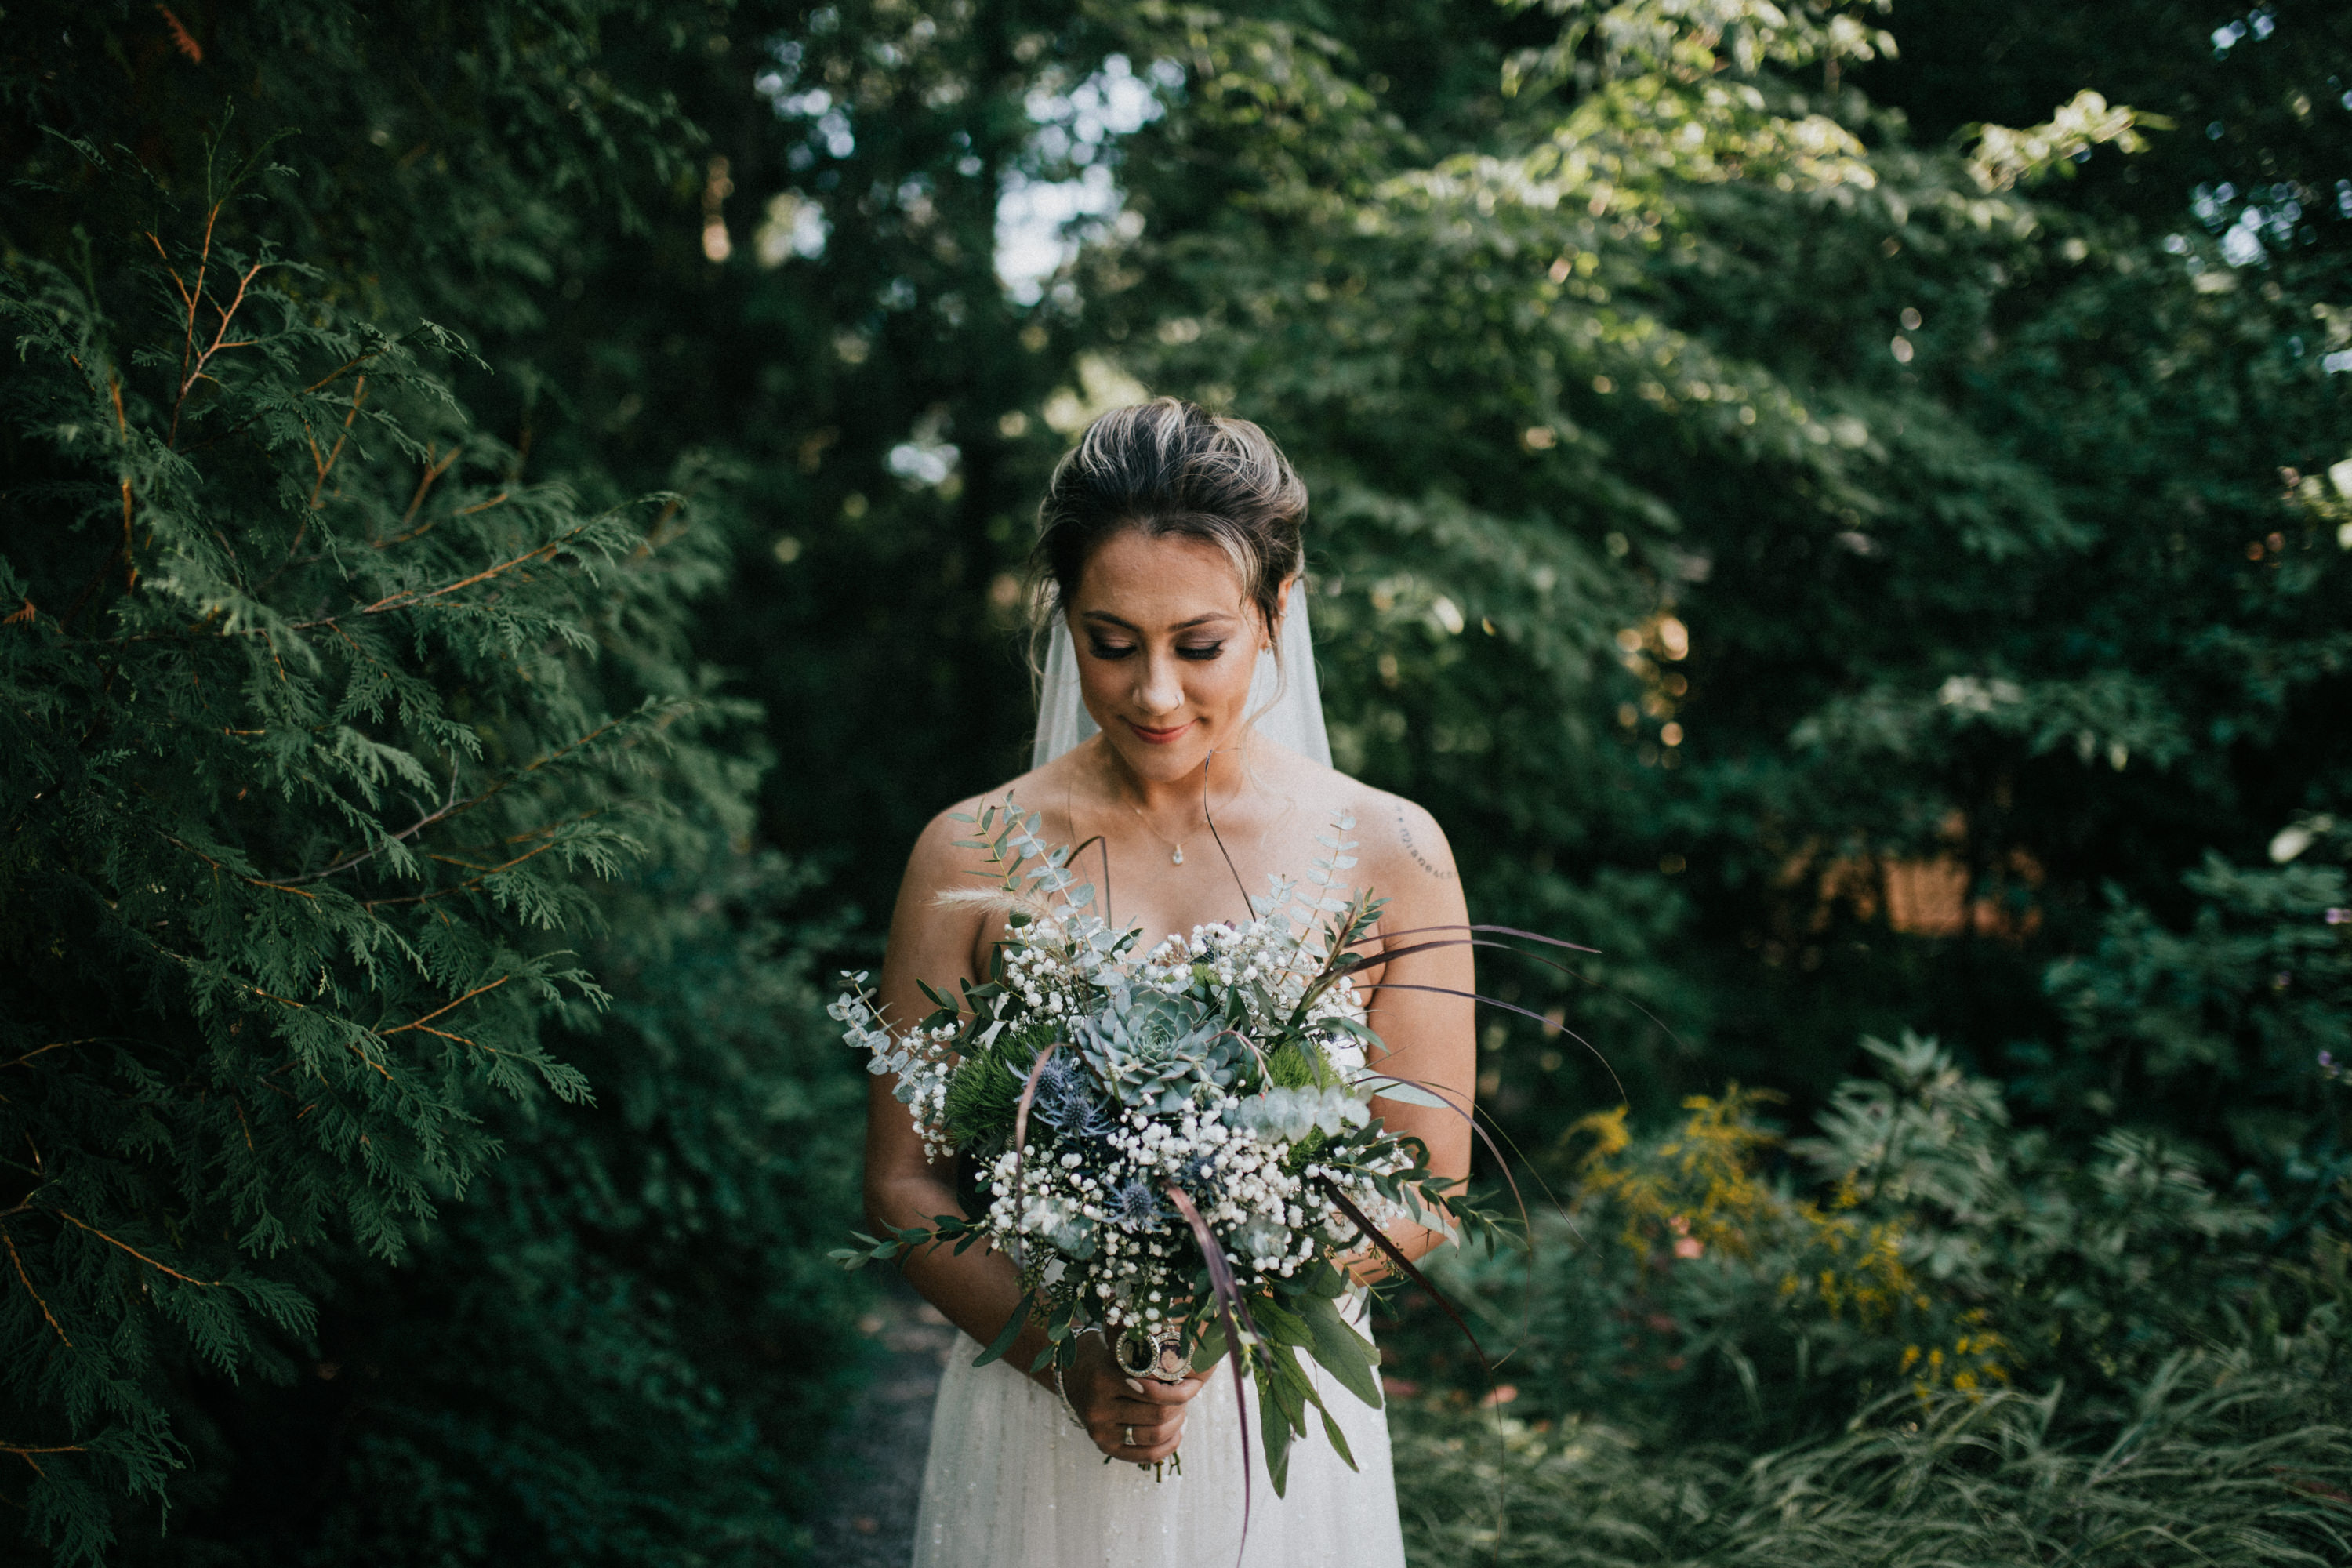 bride looking at her flowers in a garden